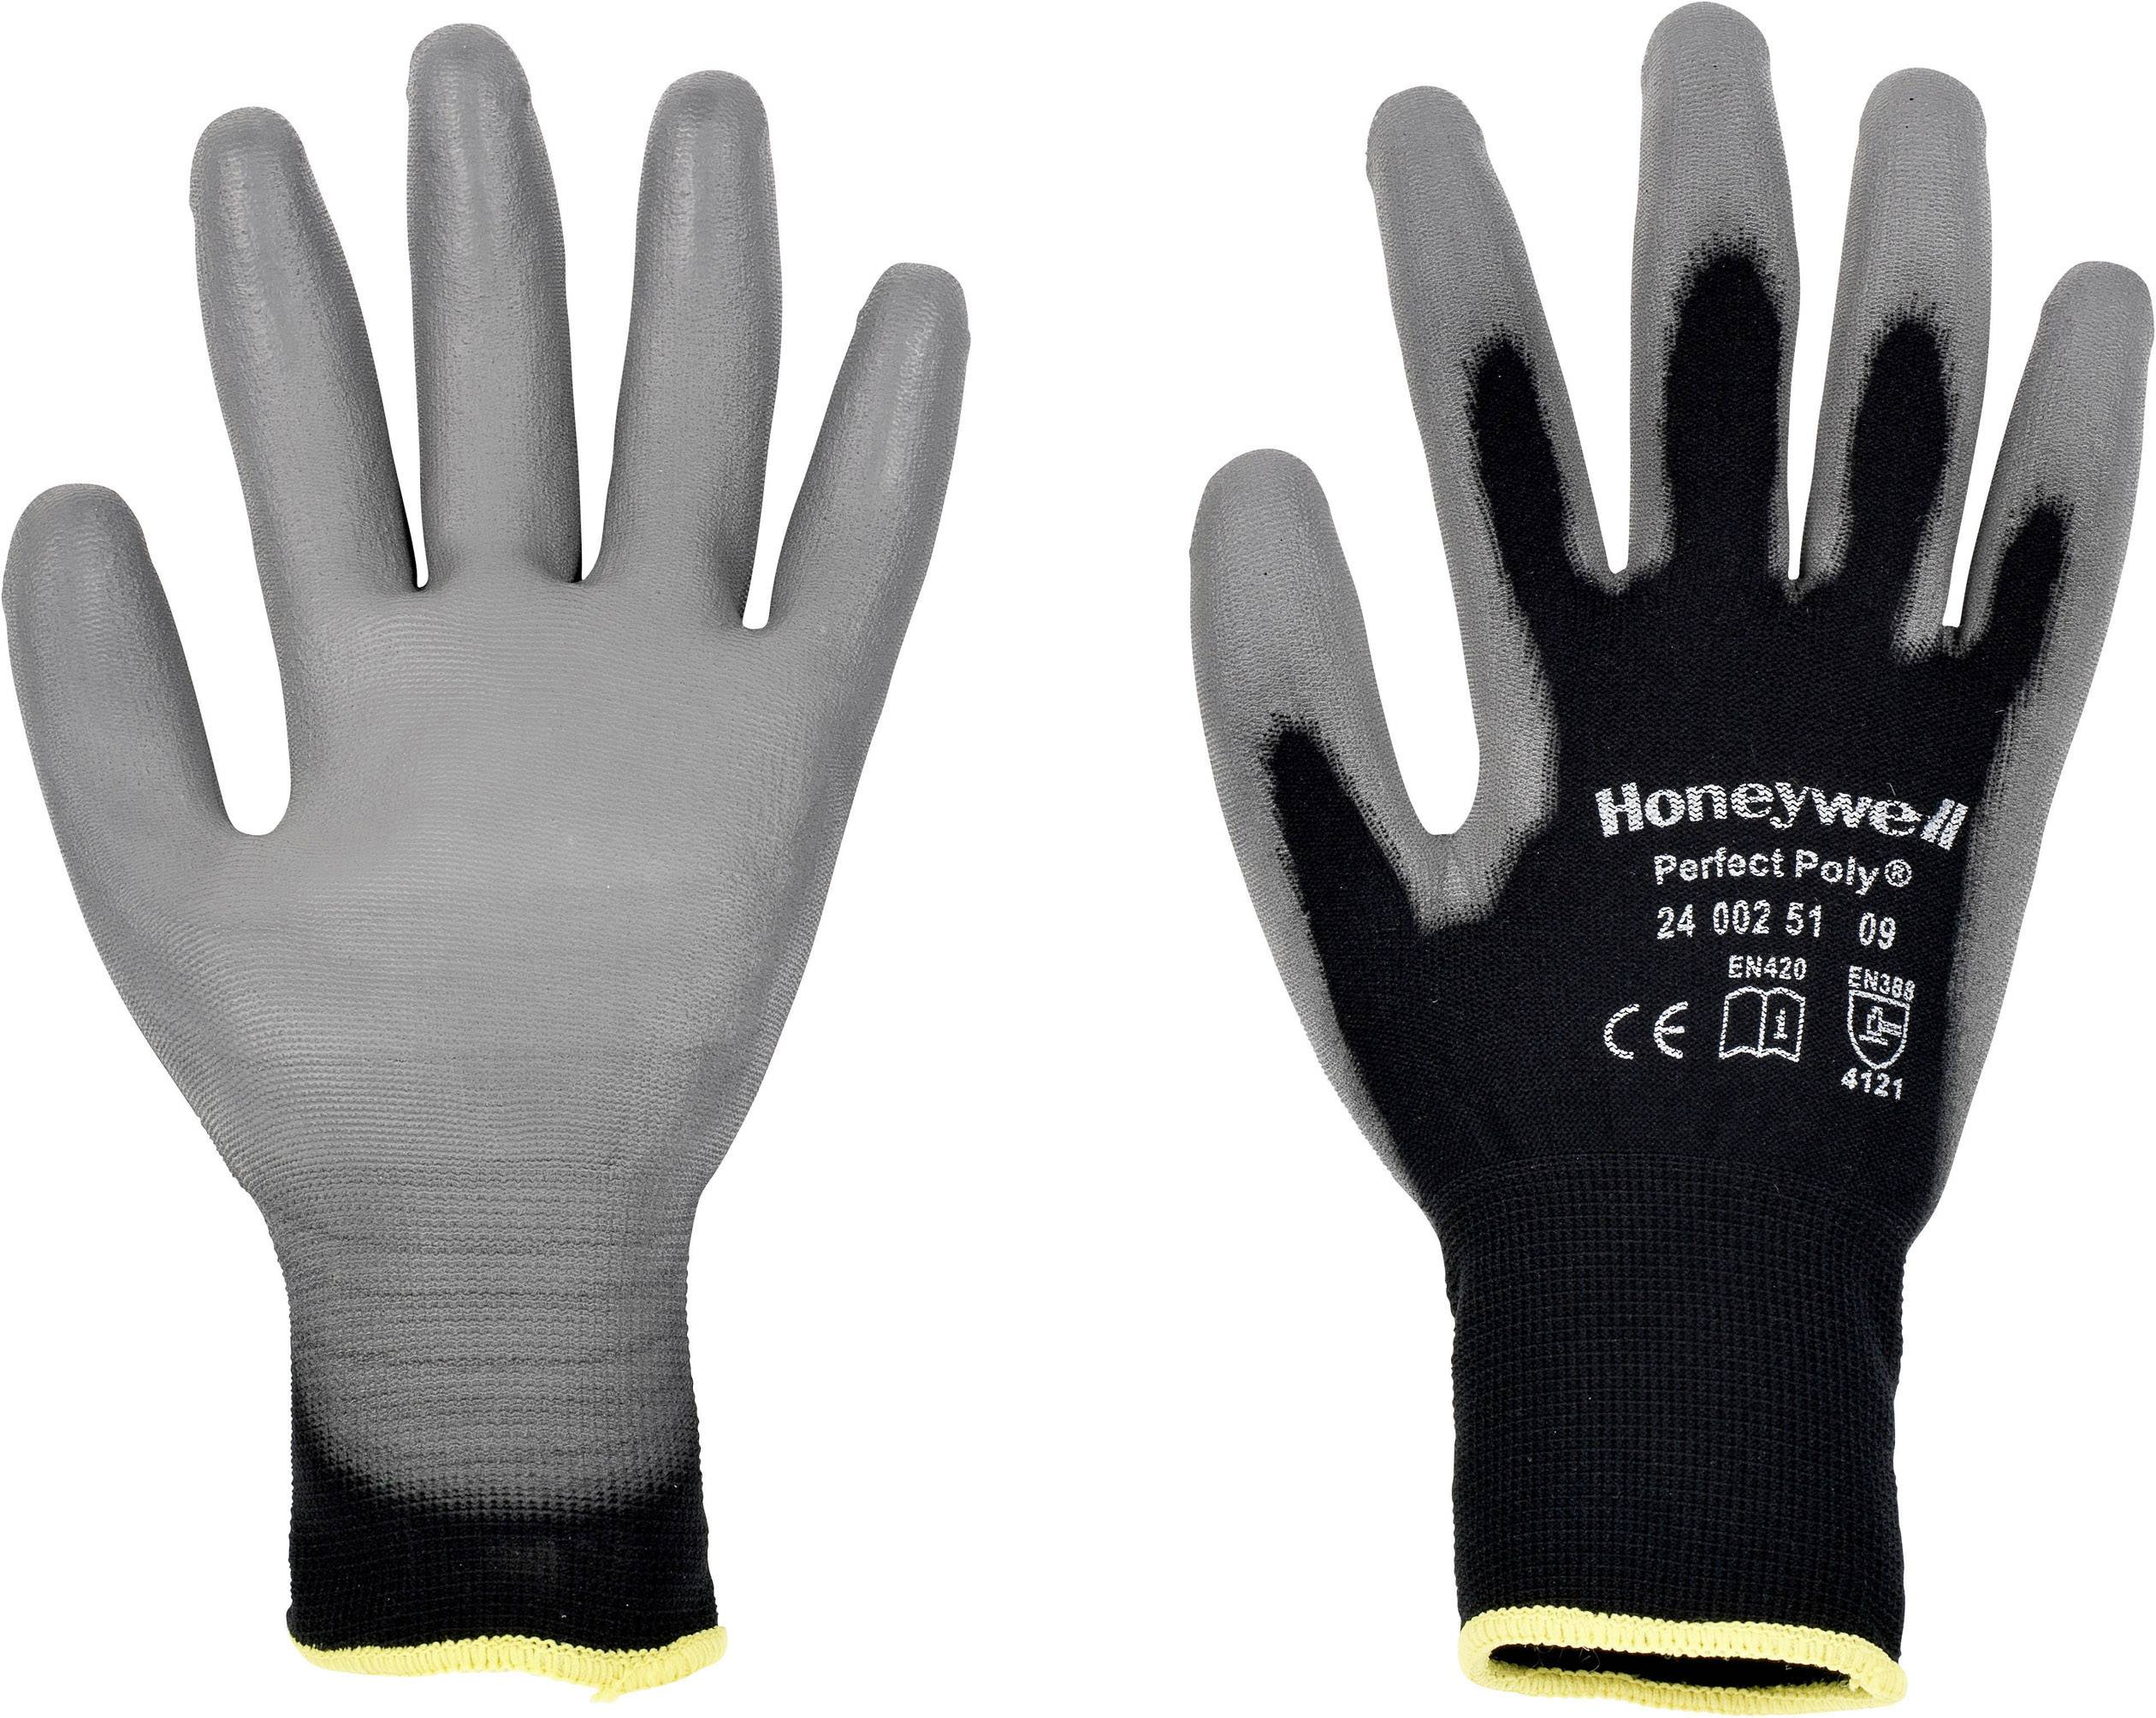 Pracovné rukavice Perfect Fit GANTS NOIRS PERFECTPOLY 2400251, velikost rukavic: 8, M